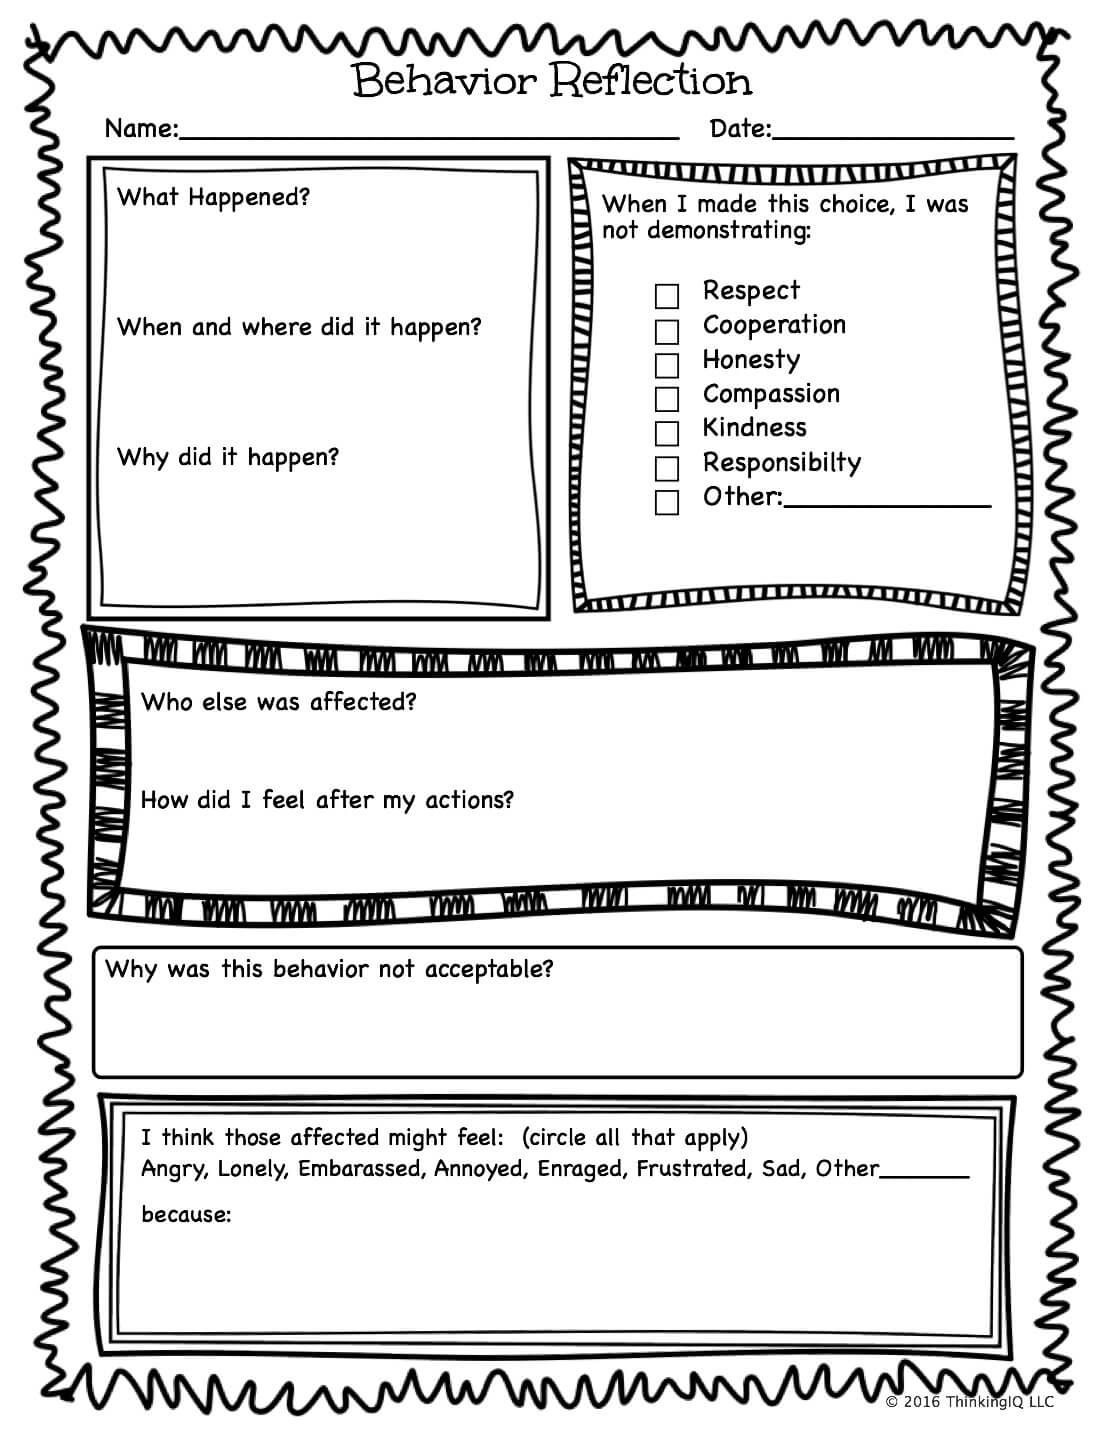 Making Better Choices Worksheet